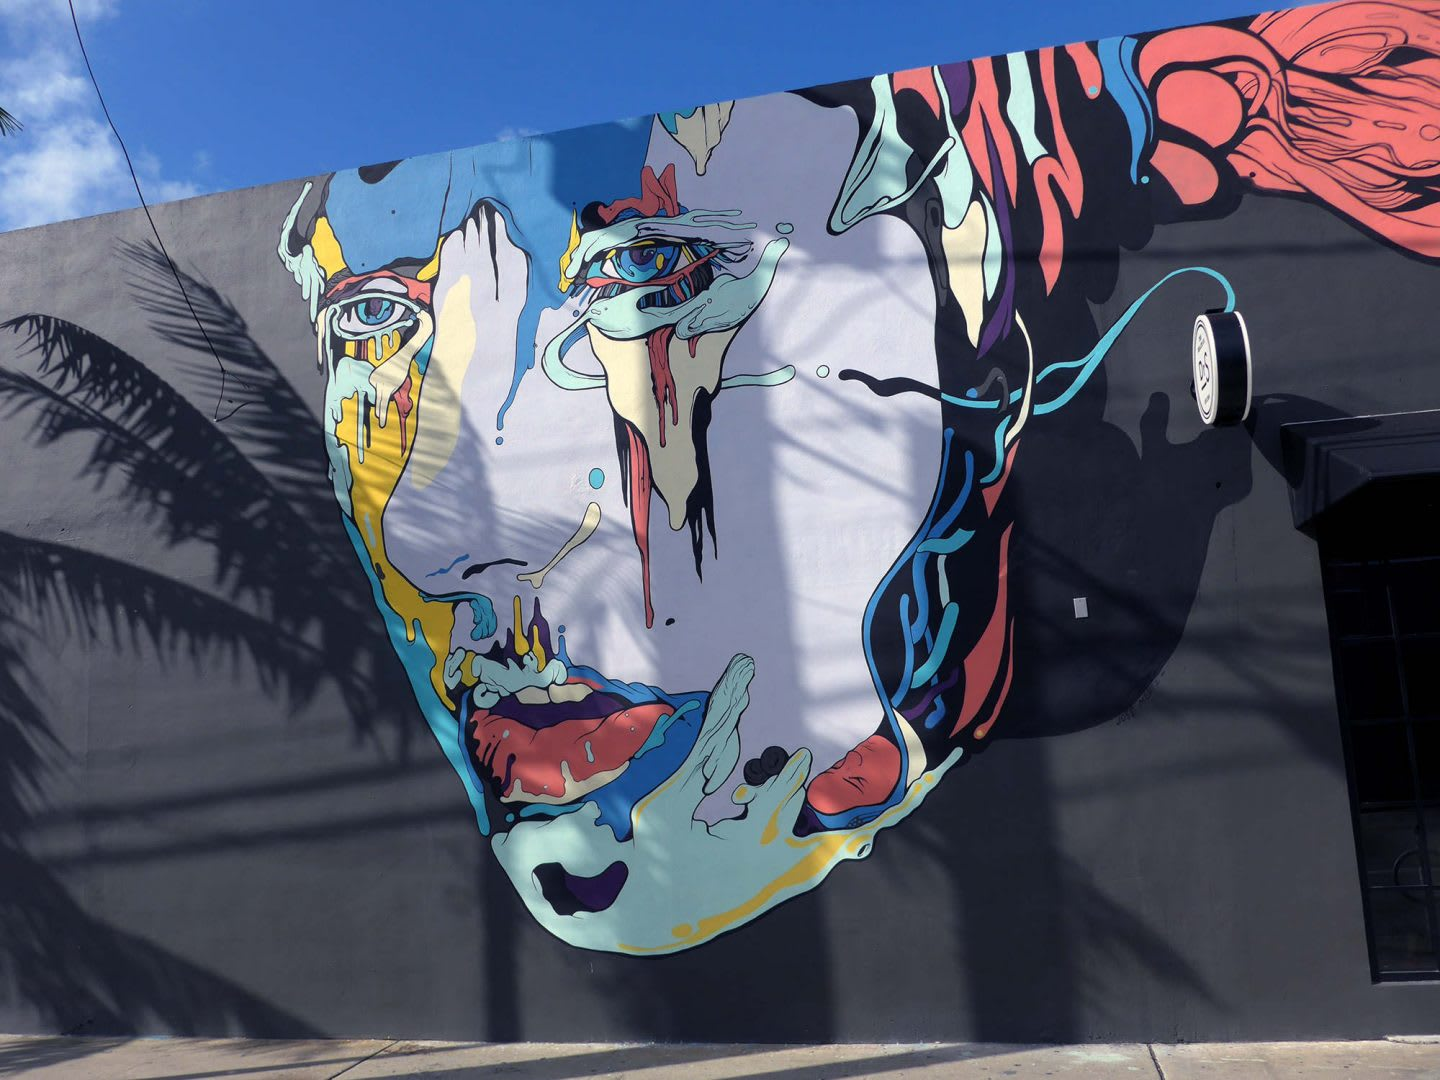 a painting in the design of a face is on a black wall on the streets of Miami. painting, mural, creativity, street art